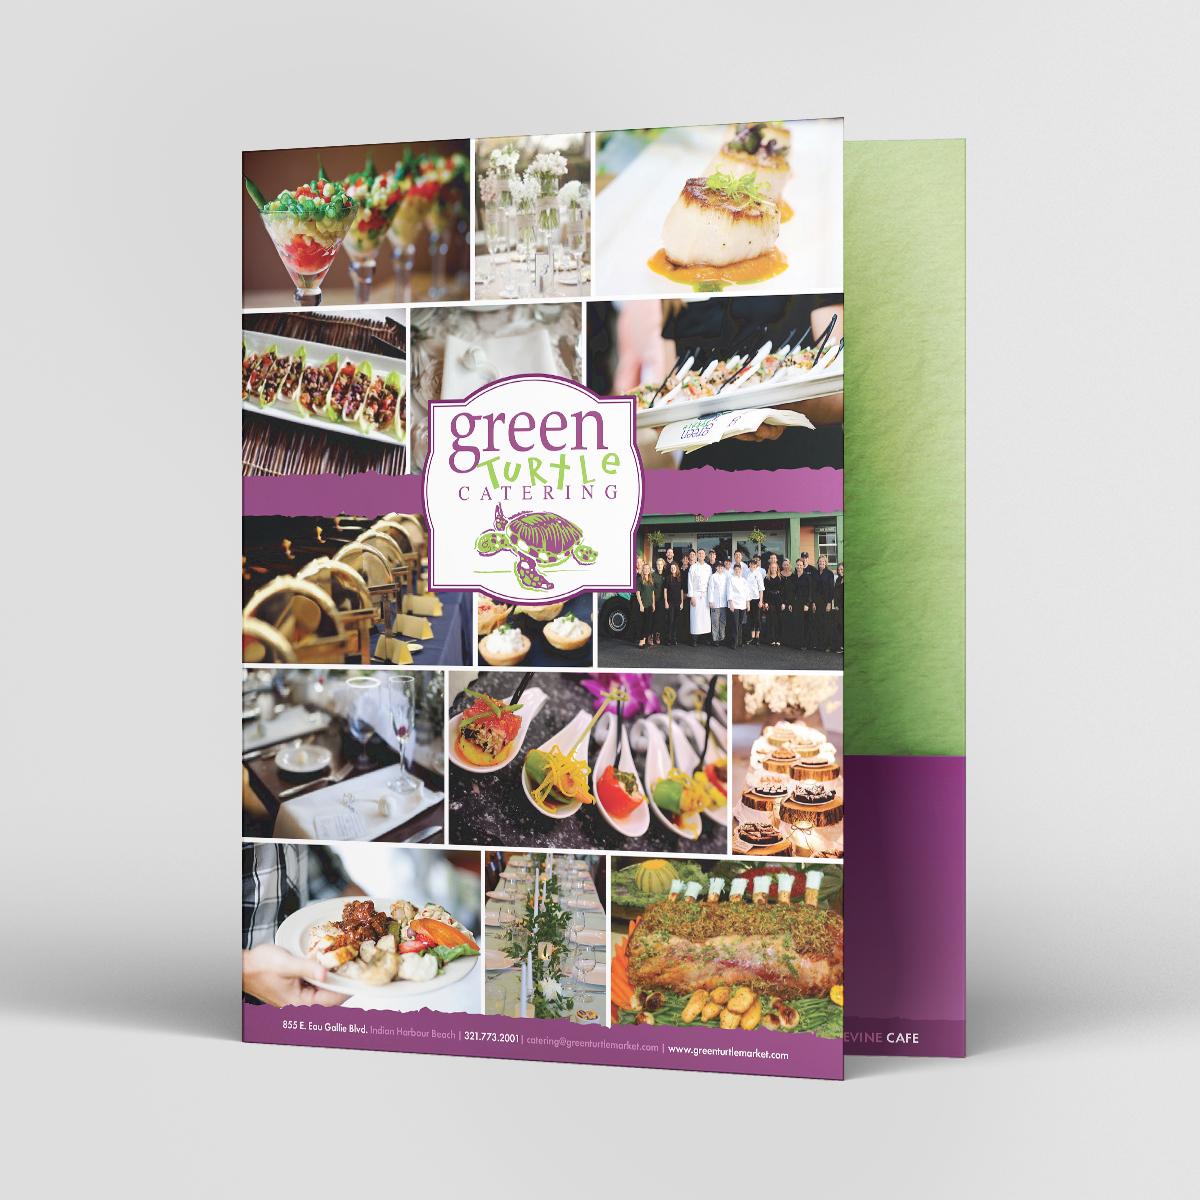 green turtle catering folder